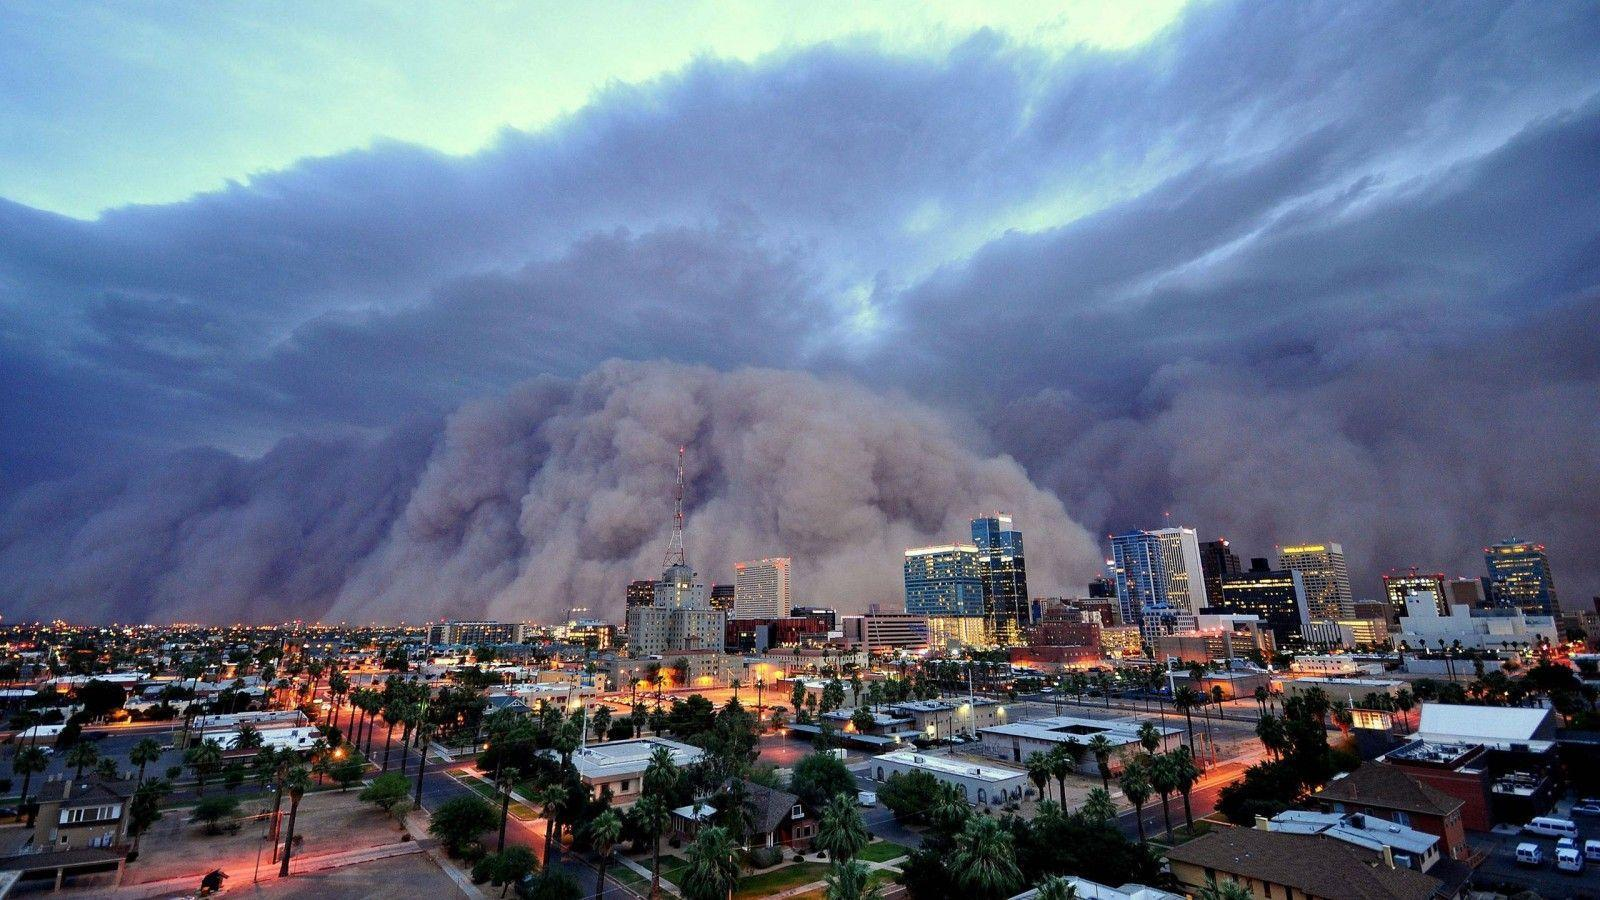 phoenix arizona - Bing images